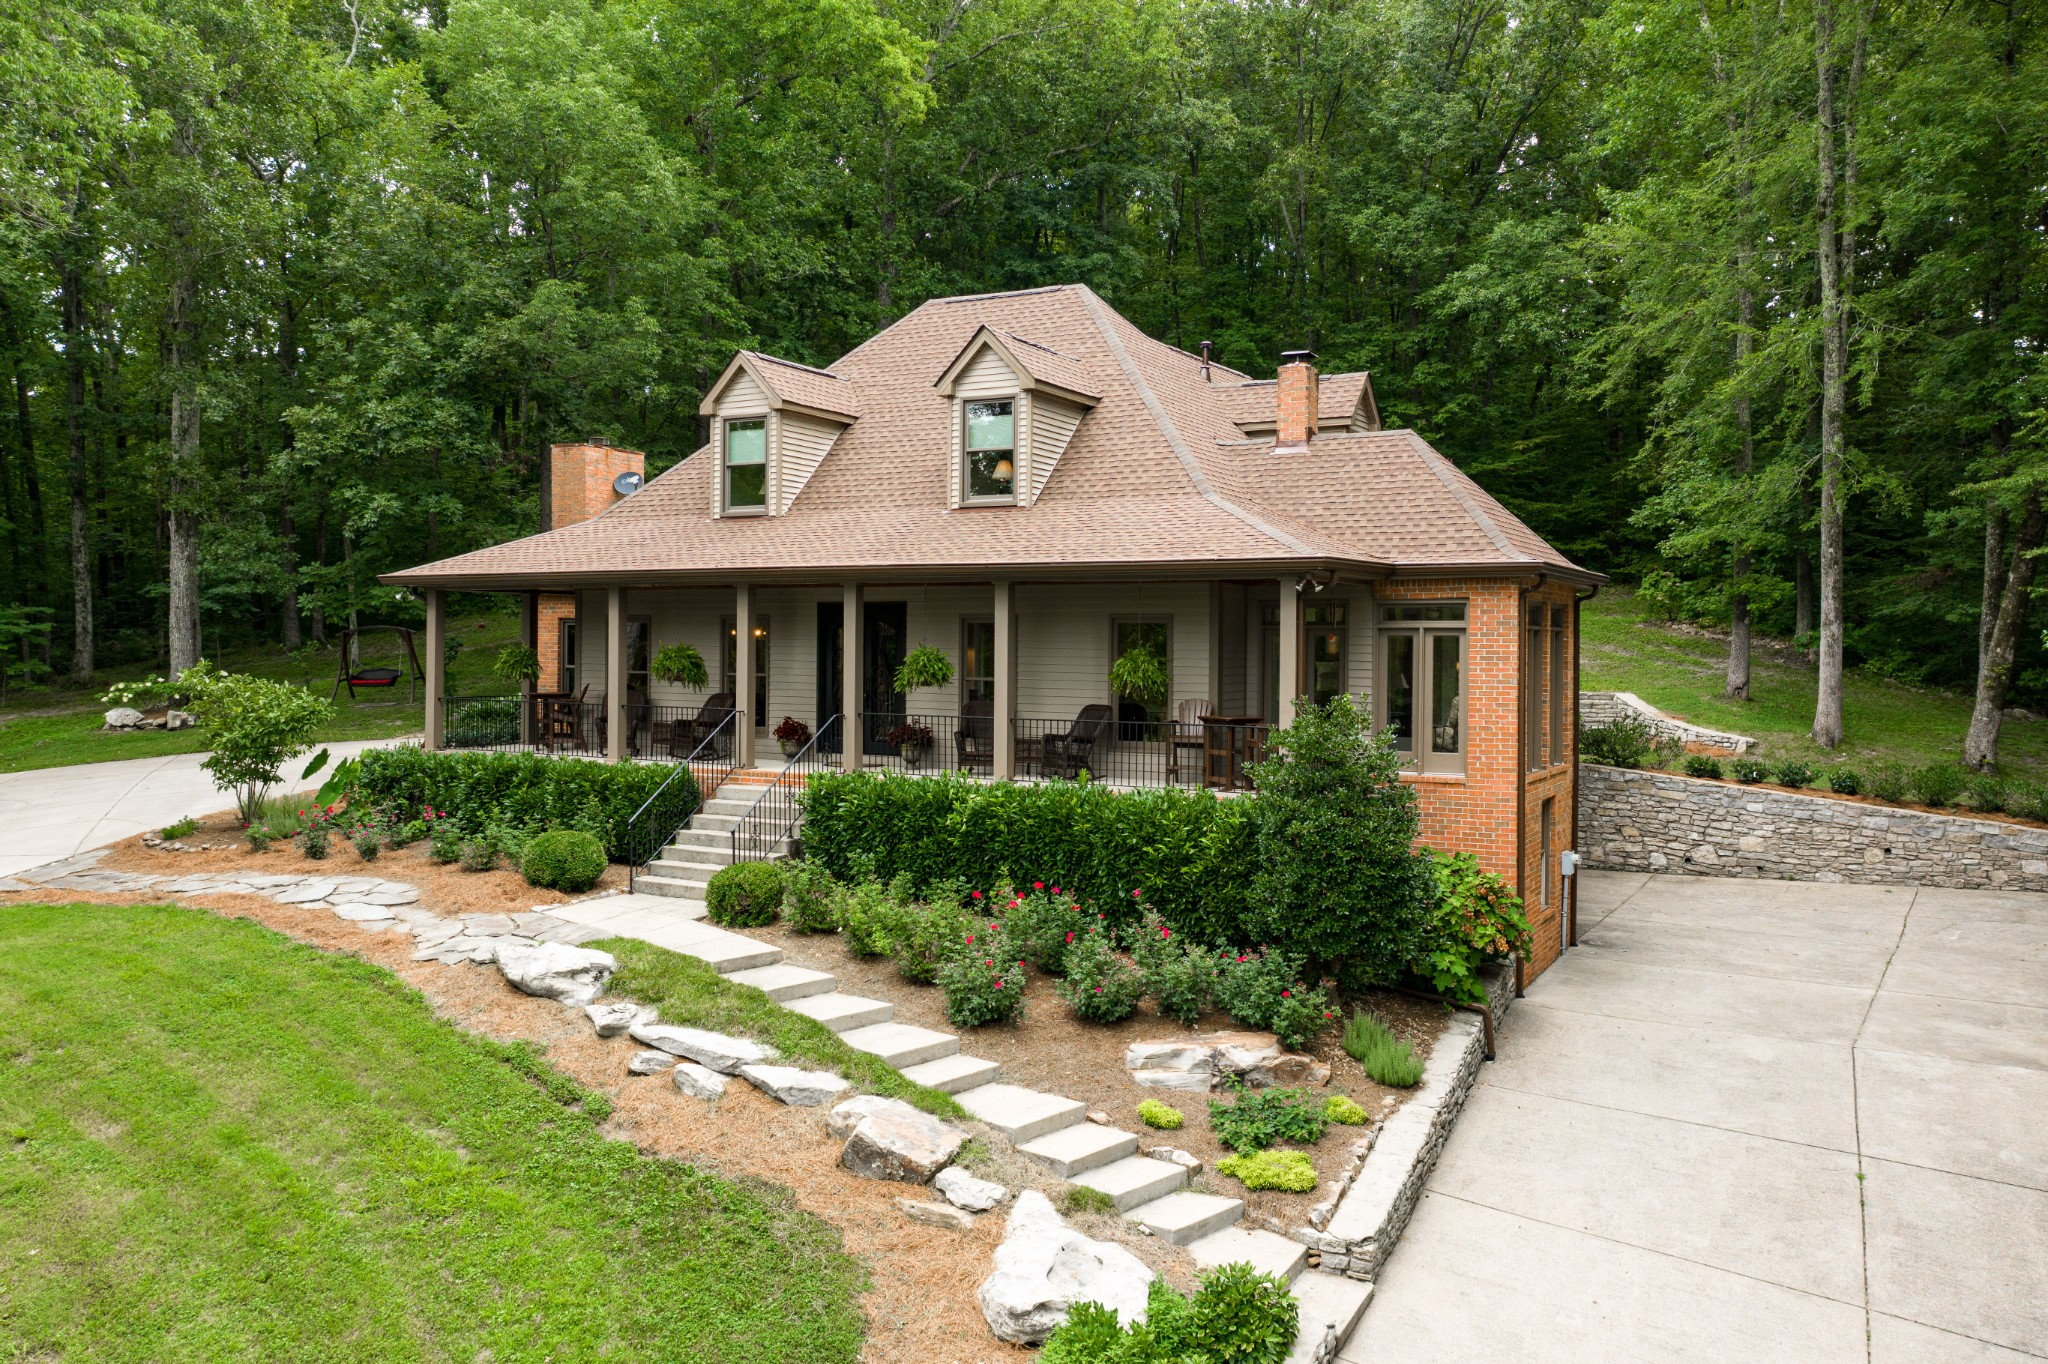 8960 Horton Hwy Property Photo - College Grove, TN real estate listing